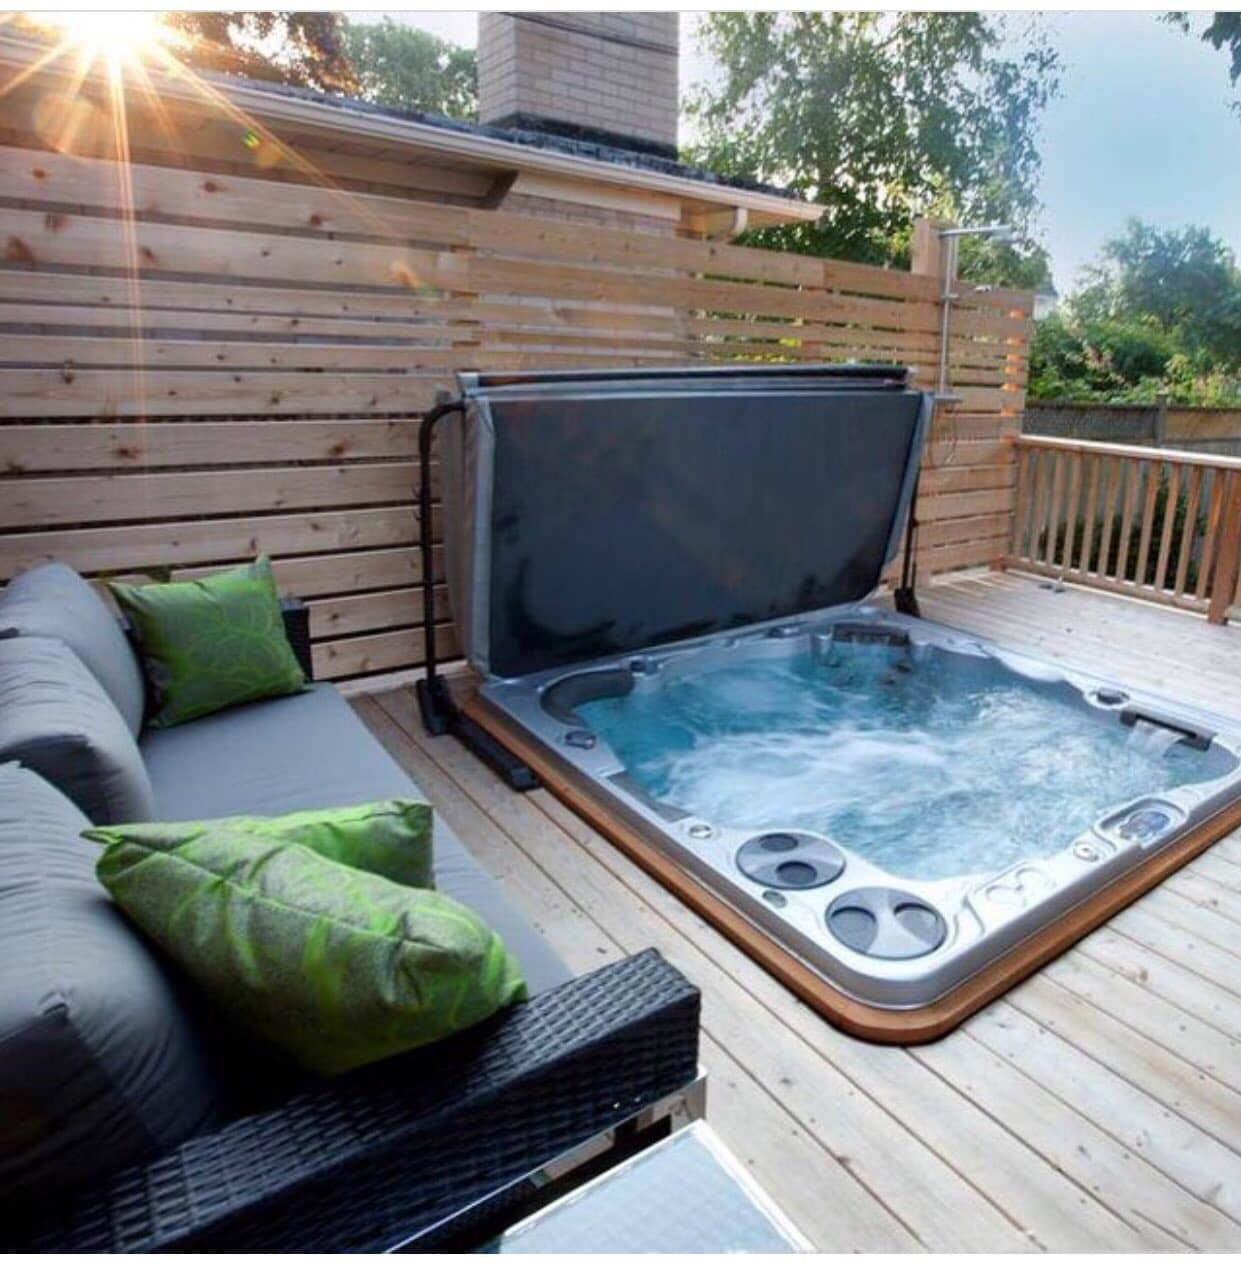 hydropool serenity hot tub installation with outdoor furniture